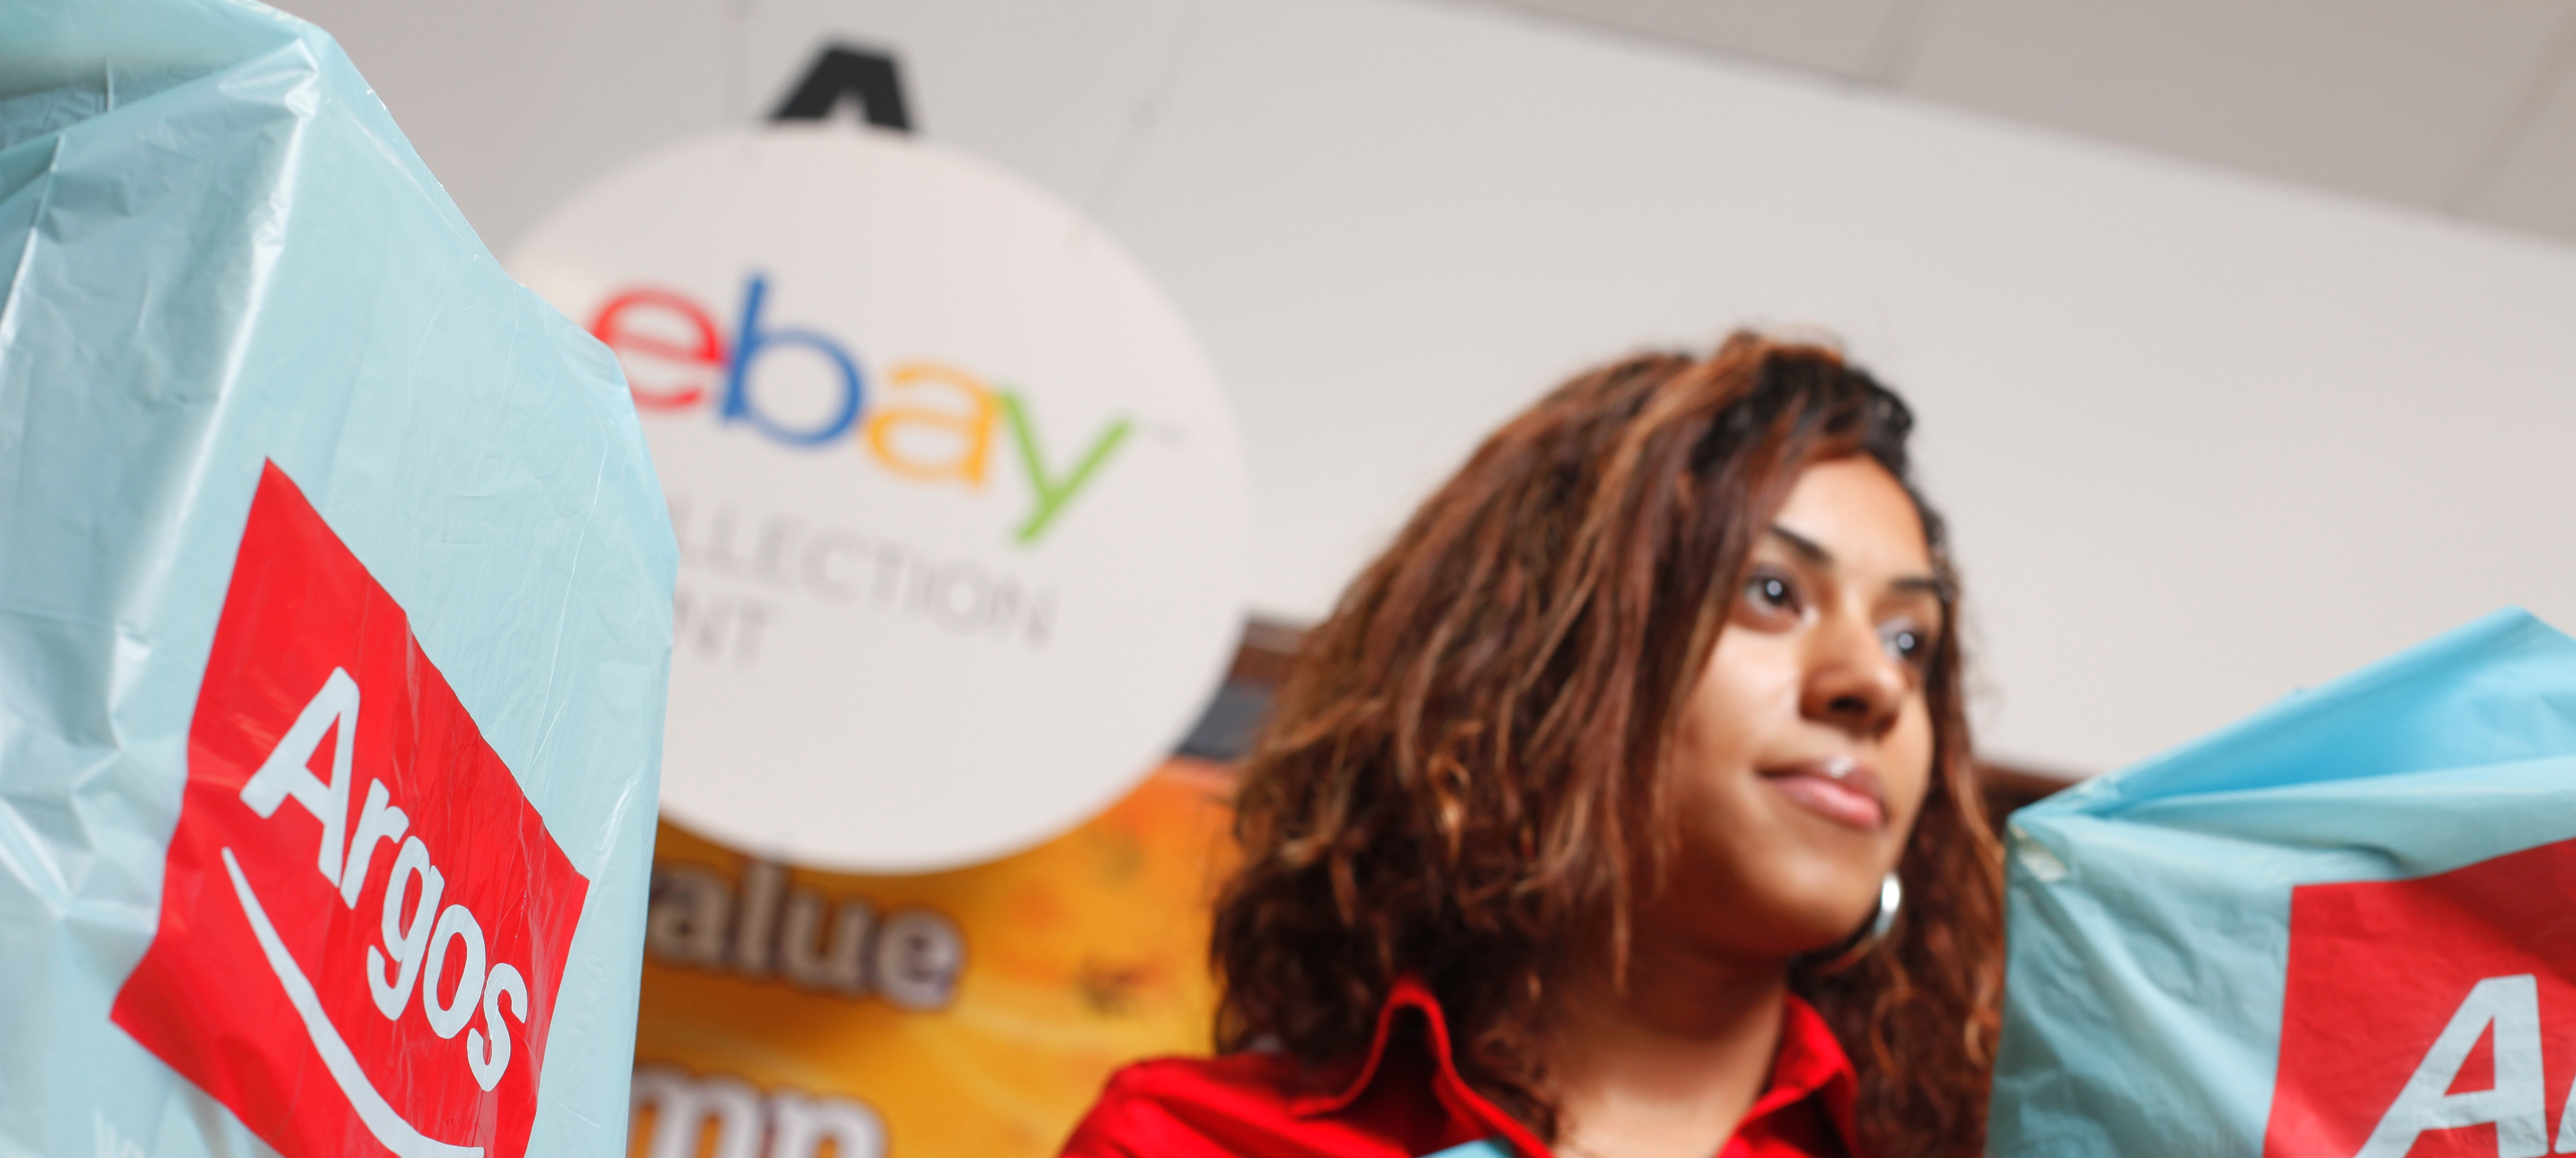 eBay Expands Click-and-Collect Argos Partnership